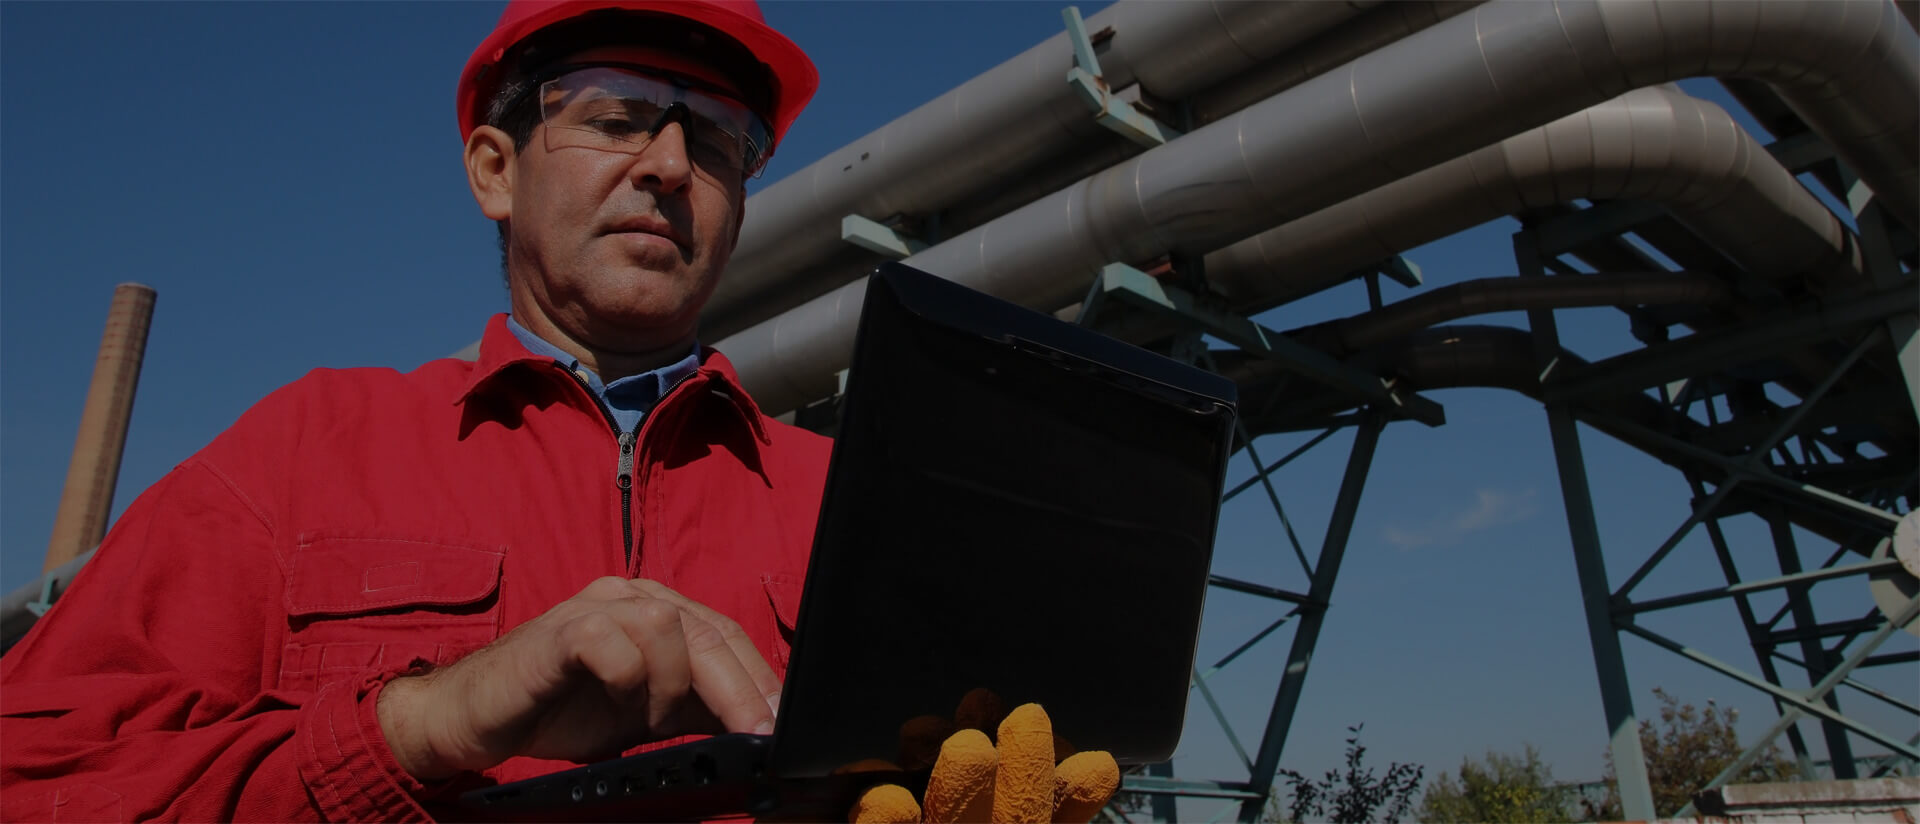 Get advice for tank emissions management with ERA's consulting overview.